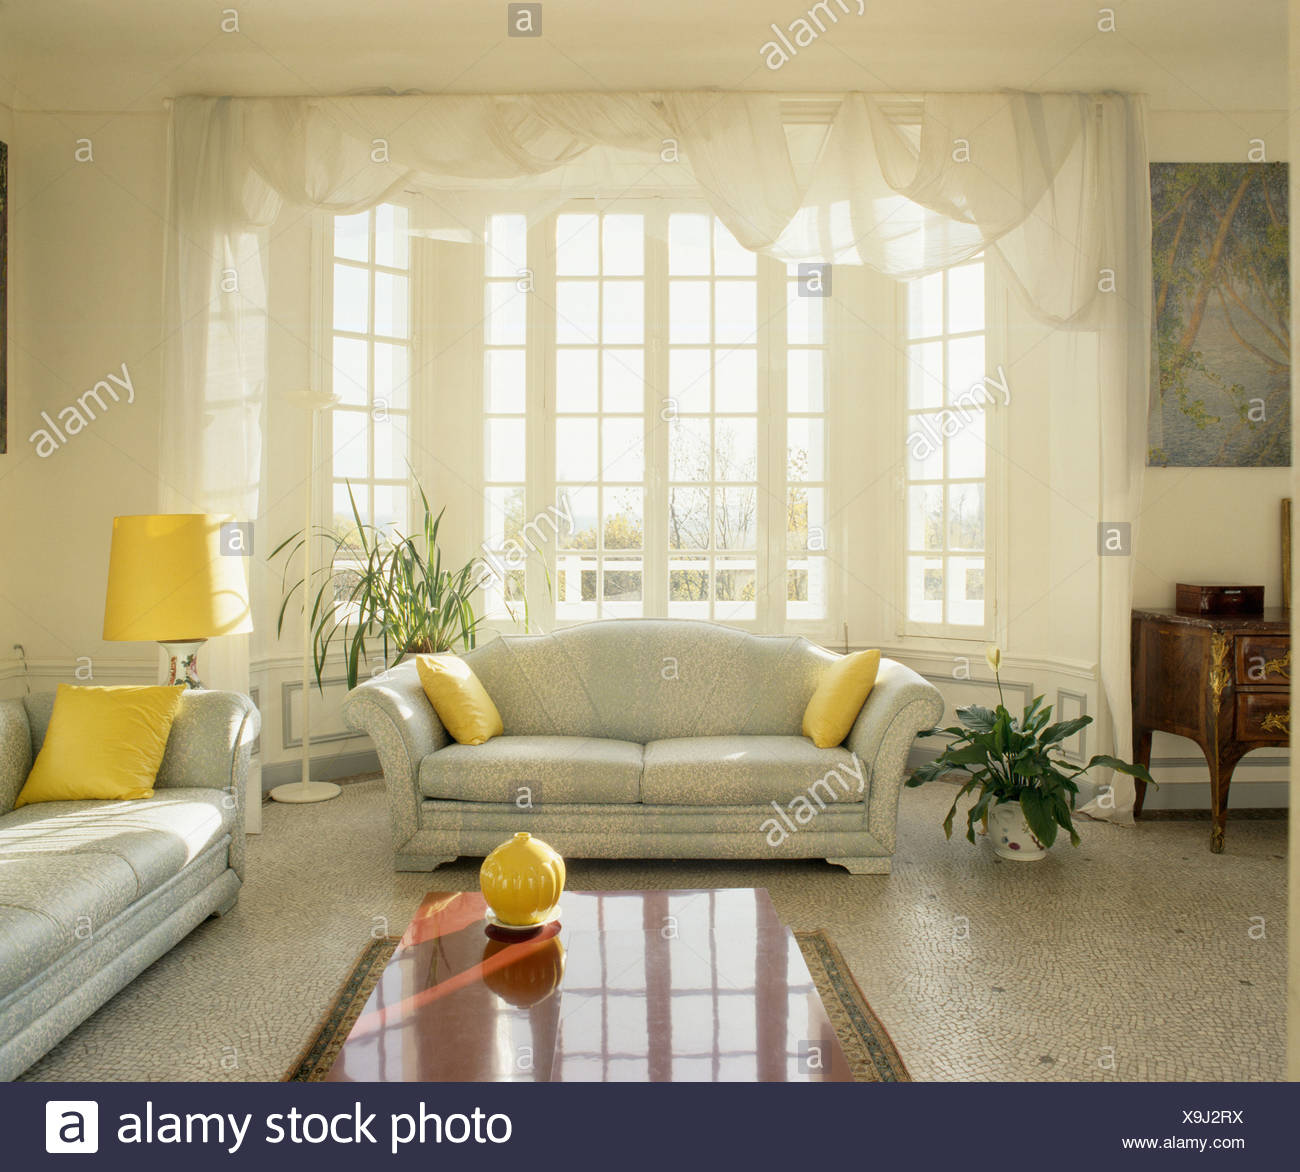 Terrazzo Floor And Grey Sofas With Yellow Cushions In Traditional French  Living Room With Voile Drapes On Bay Window